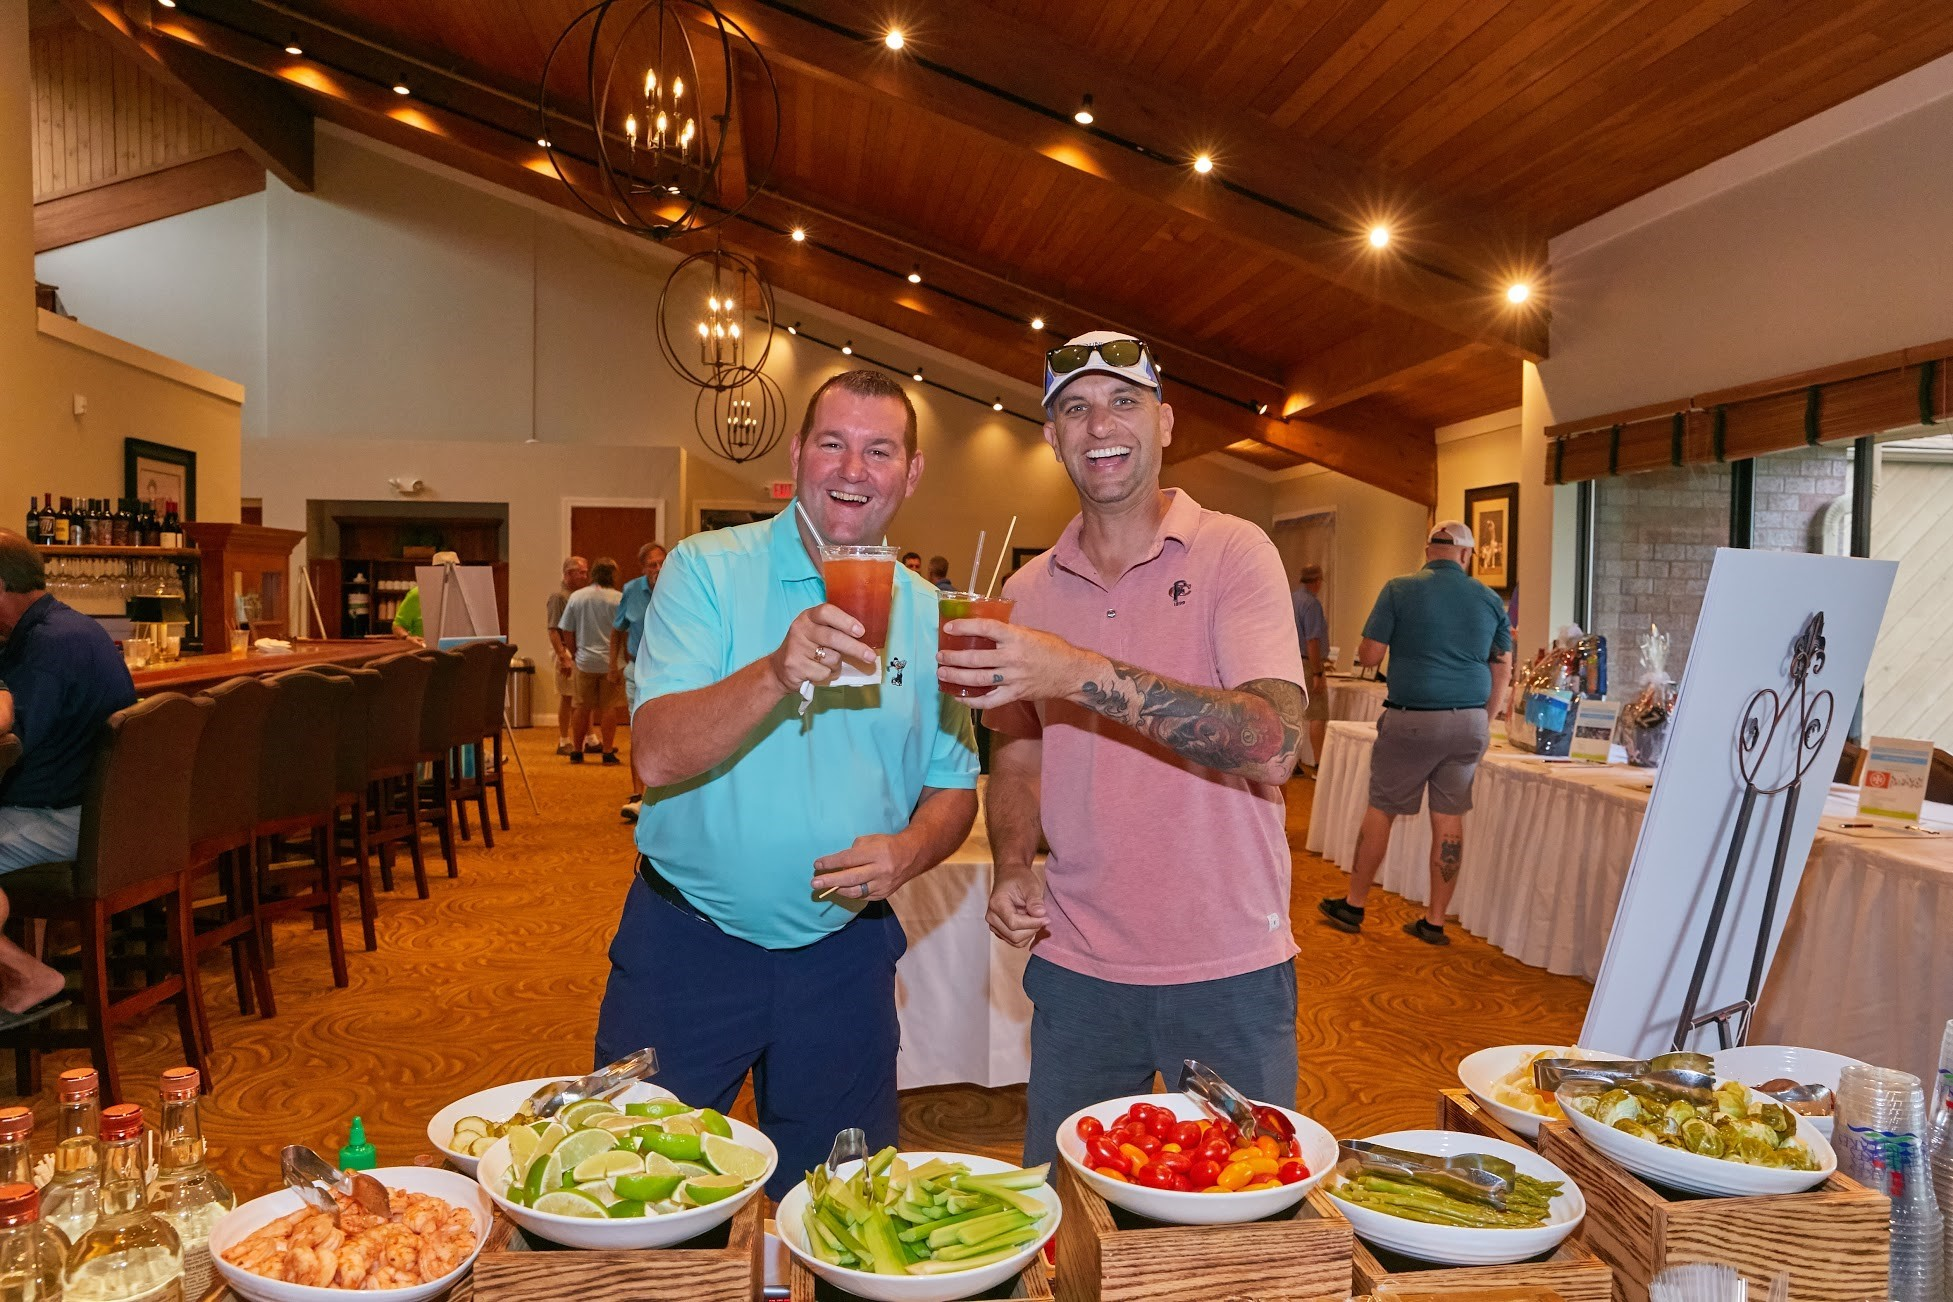 10th Annual Kroeschell Charity Golf Outing gallery image #7